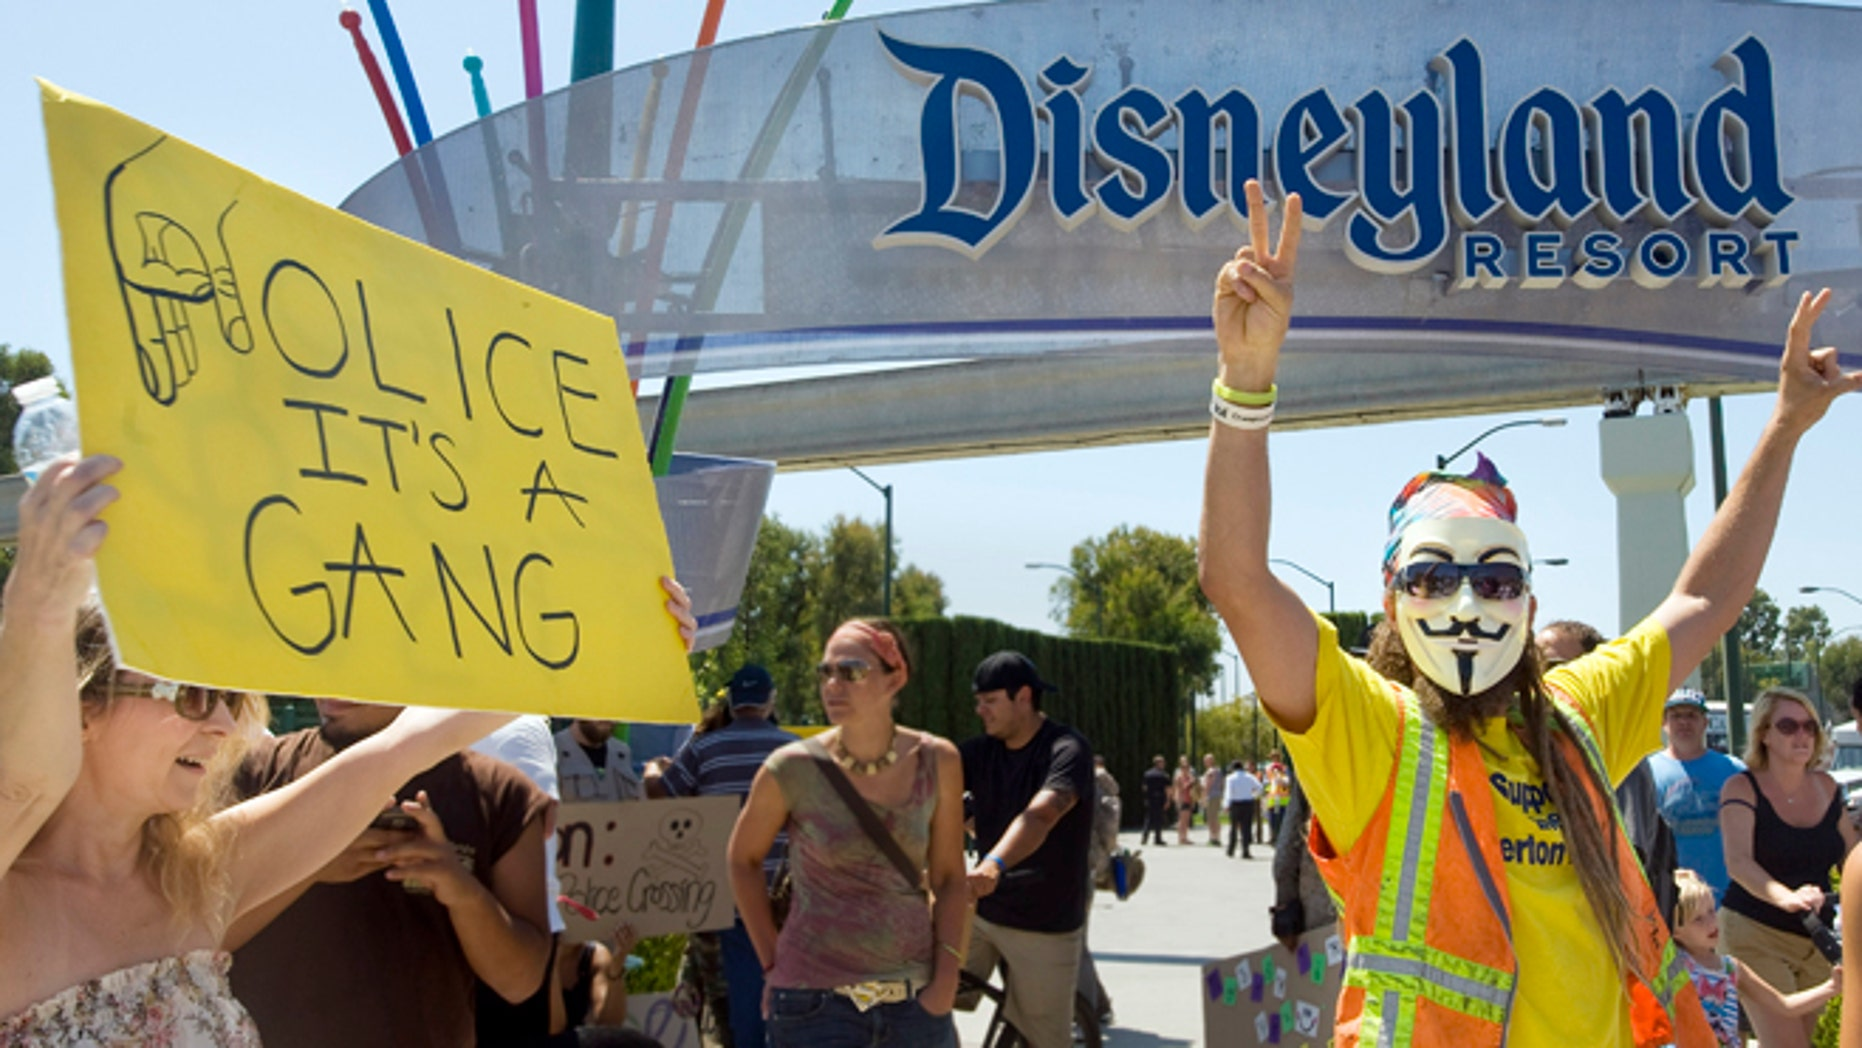 FILE - In this Aug. 5, 2012 file photo, protesters rally outside Disneyland in Anaheim, Calif., protesting what they say is excessive police force used by Anaheim police. Ferguson, Mo., has become an emblem of the tensions between minorities and police departments nationwide since Darren Wilson, a white officer, shot and killed Michael Brown, an unarmed black teenager, last summer. A U.S. Justice Department report released the first week of March, 2015, cleared Wilson of criminal wrongdoing. Though the study centered on Ferguson, its findings have resonated nationwide as residents in some communities across the country say they feel they face the same struggles with their police departments and city leadership. (AP Photo/The Orange County Register, Mindy Schauer, File)